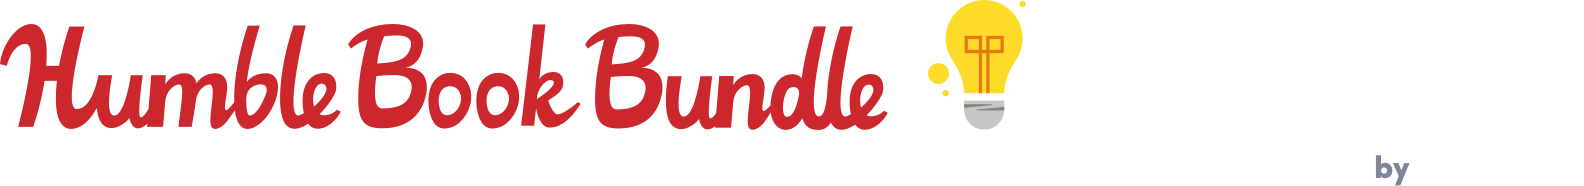 Humble Book Bundle: Become an Entrepreneur by Wiley